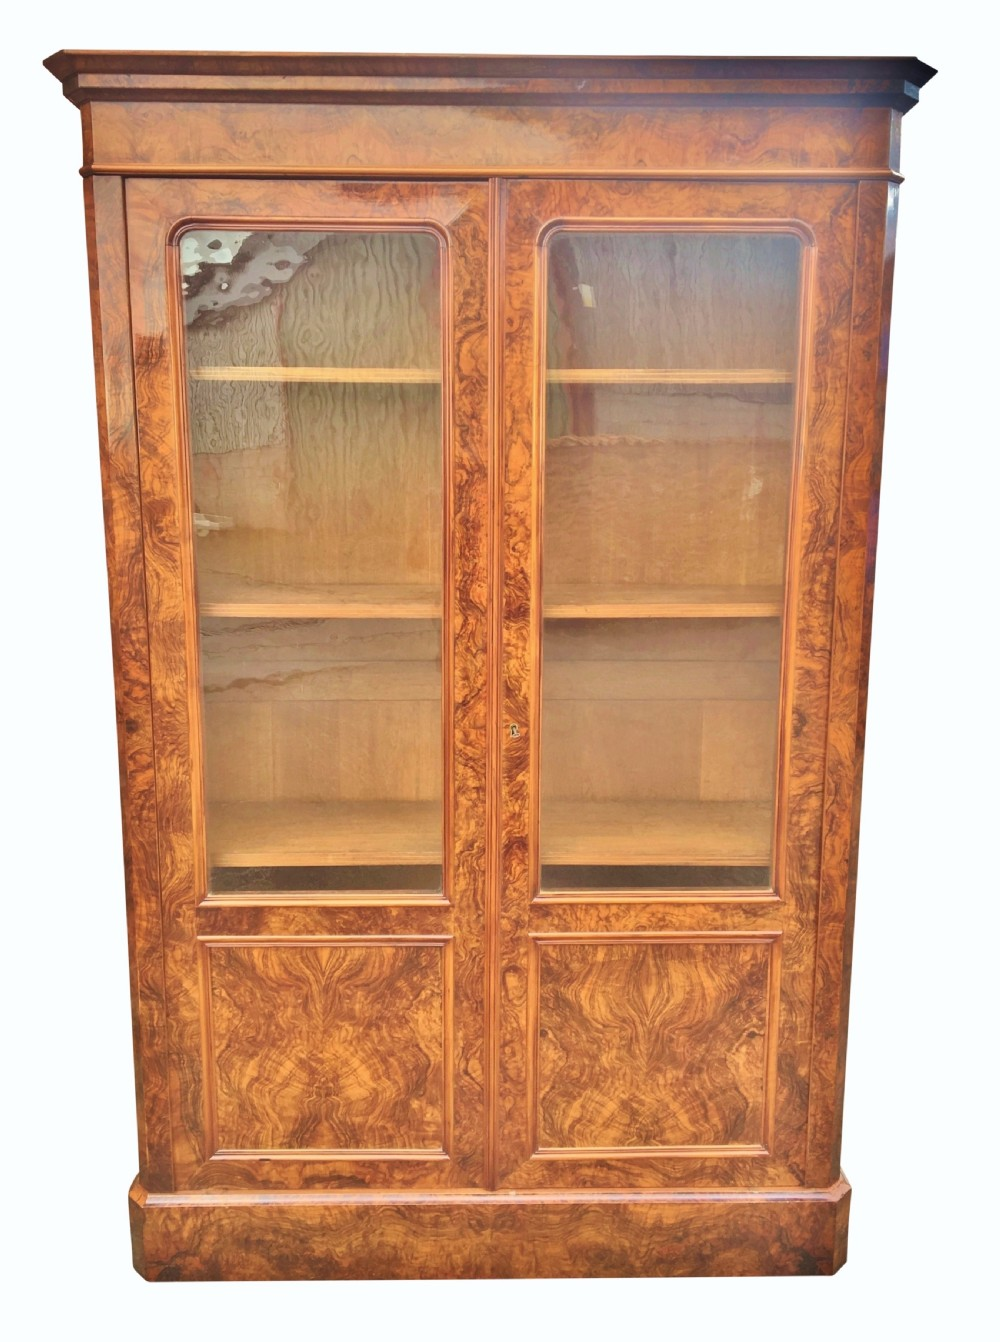 bookcase figured walnut c 1870